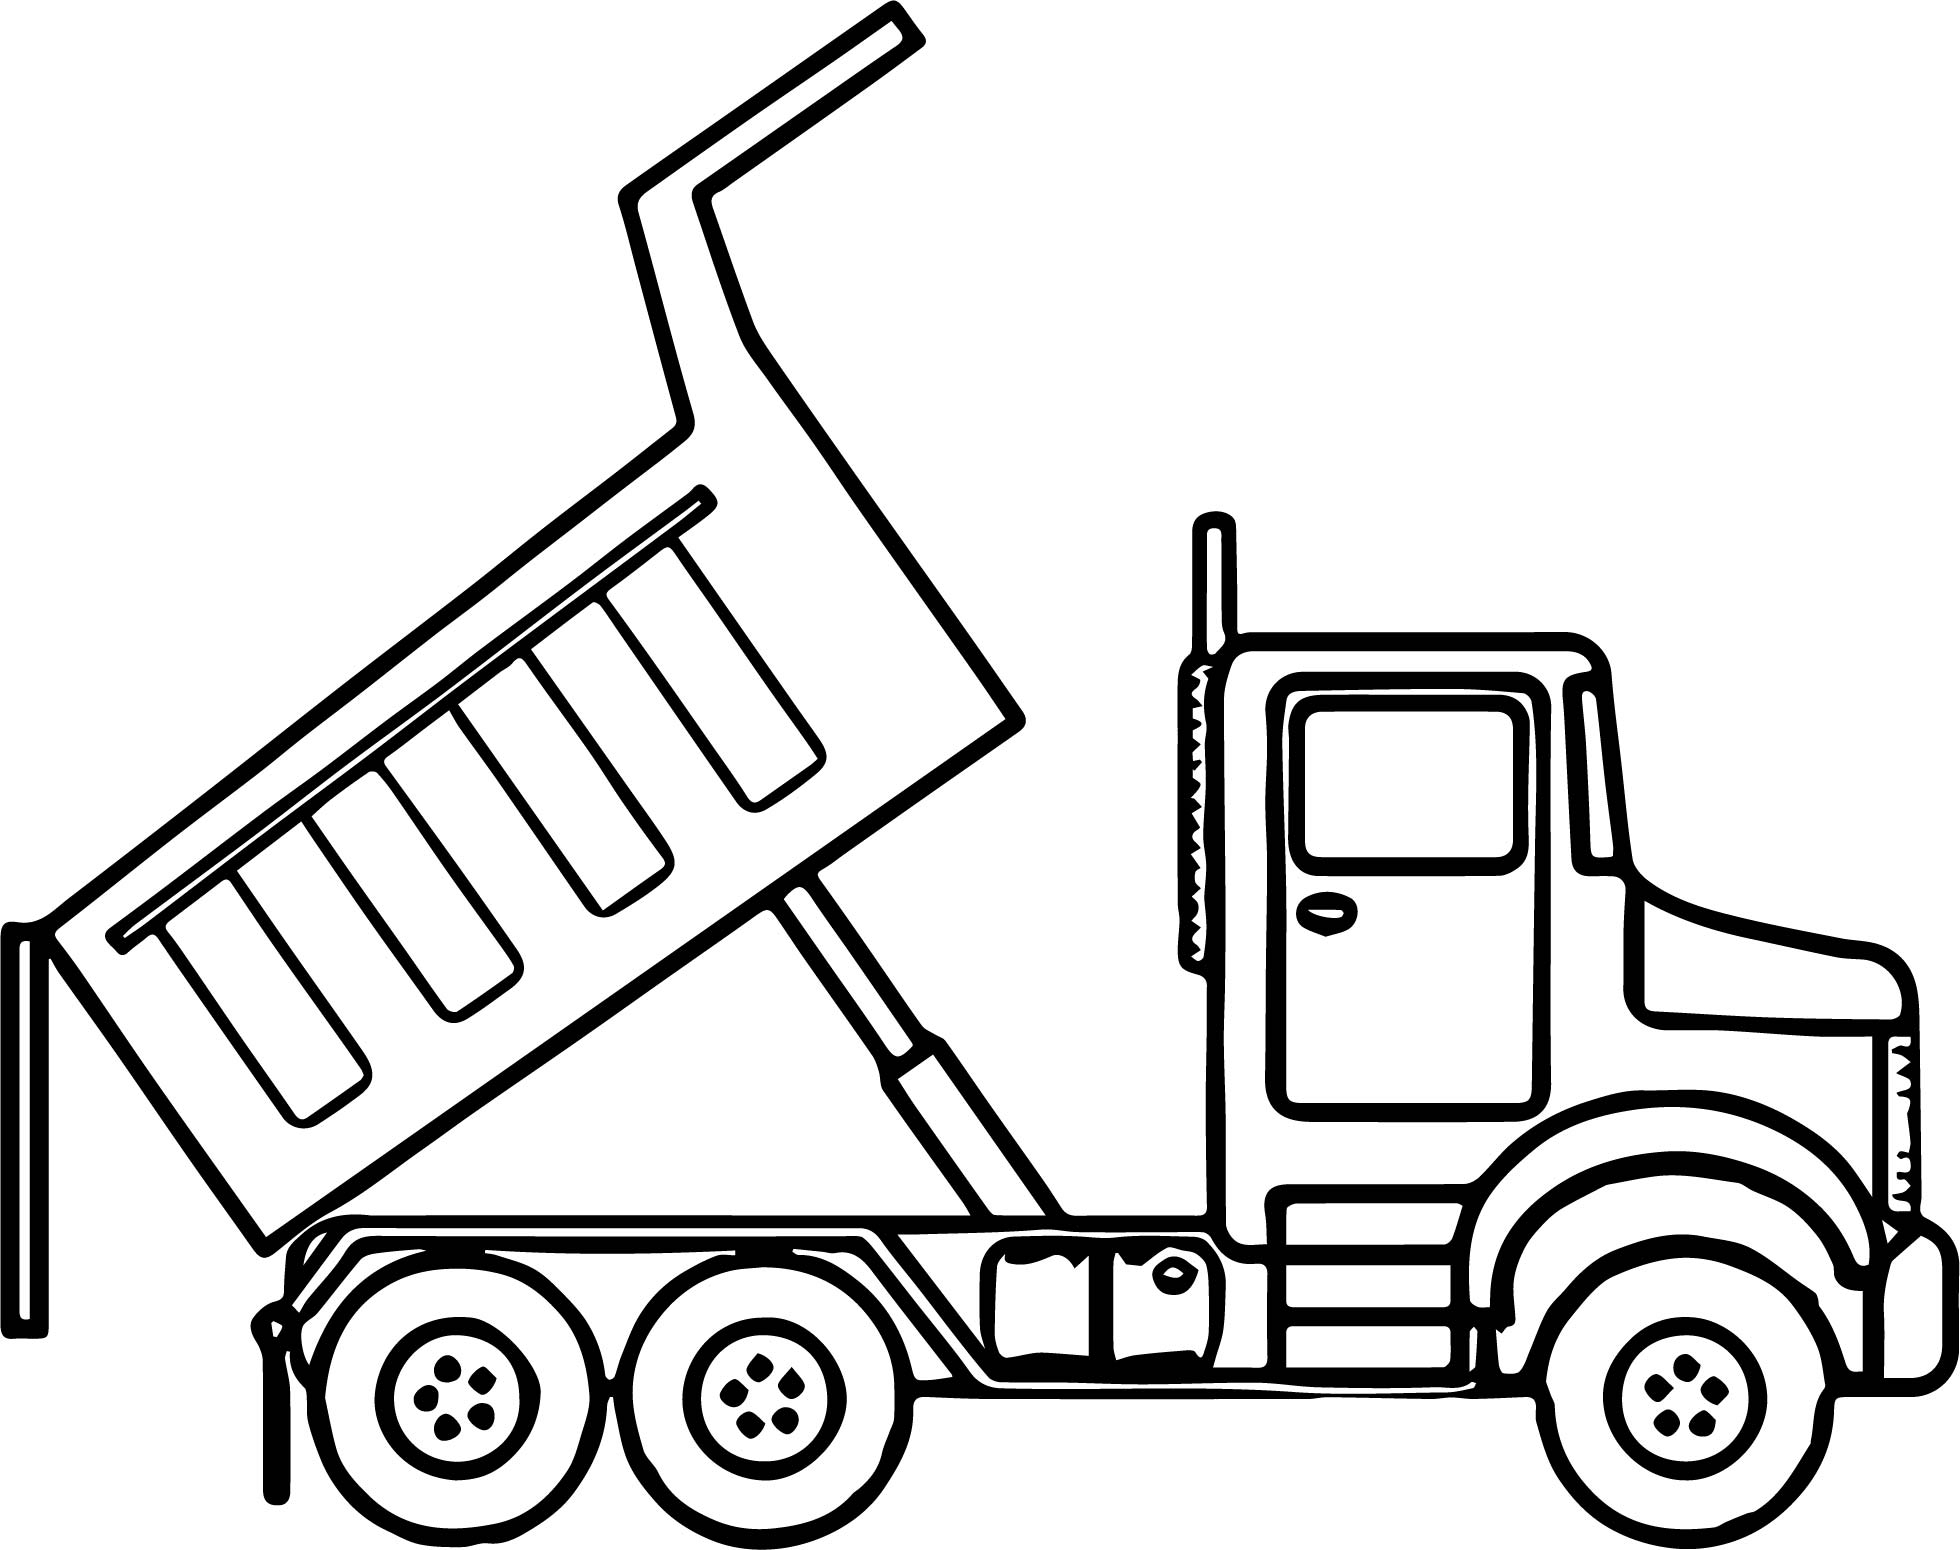 printable dump truck coloring page dump truck coloring pages getcoloringpagescom printable truck dump coloring page